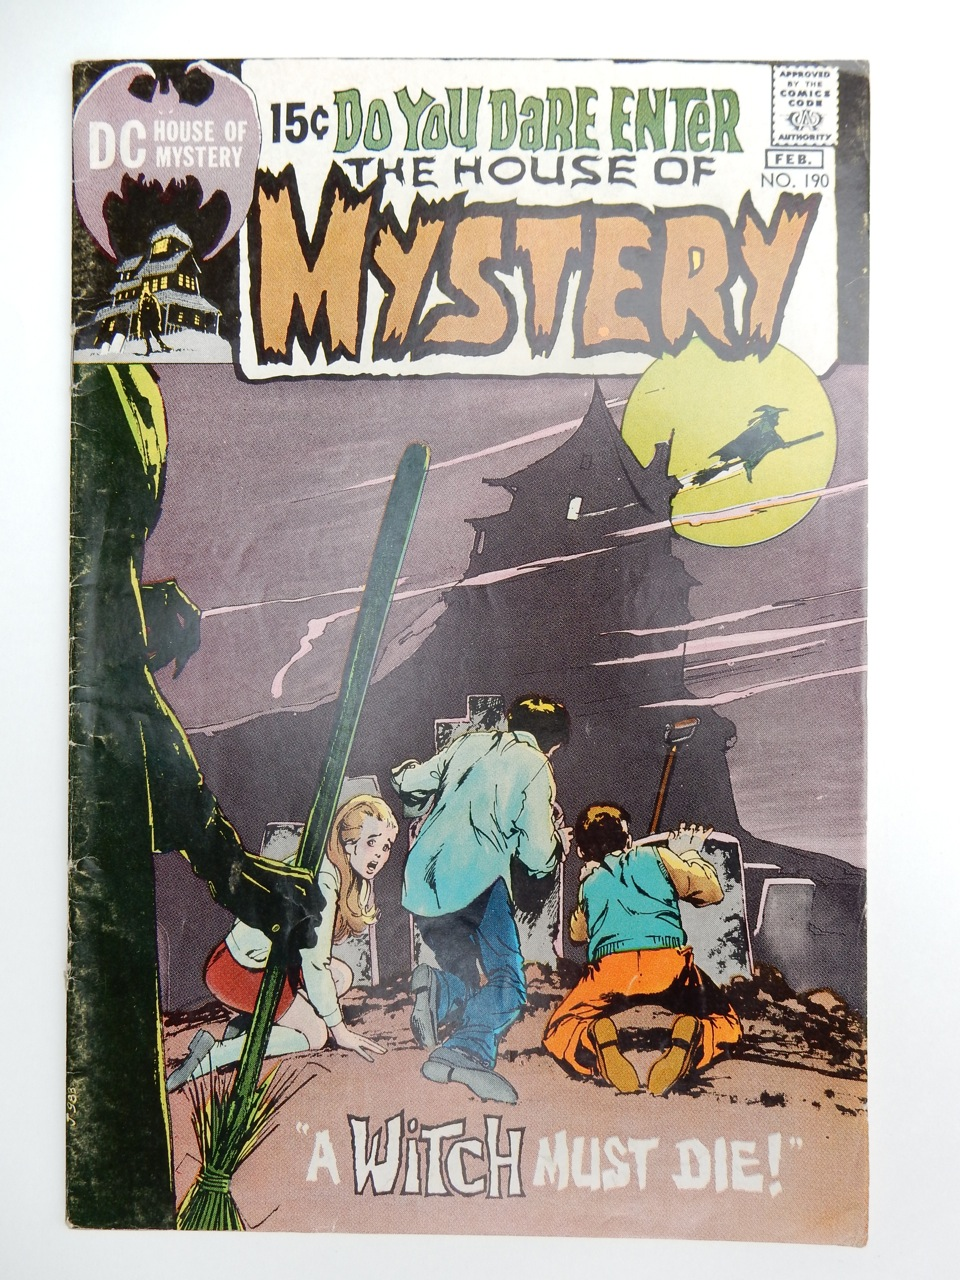 House Of Mystery #190